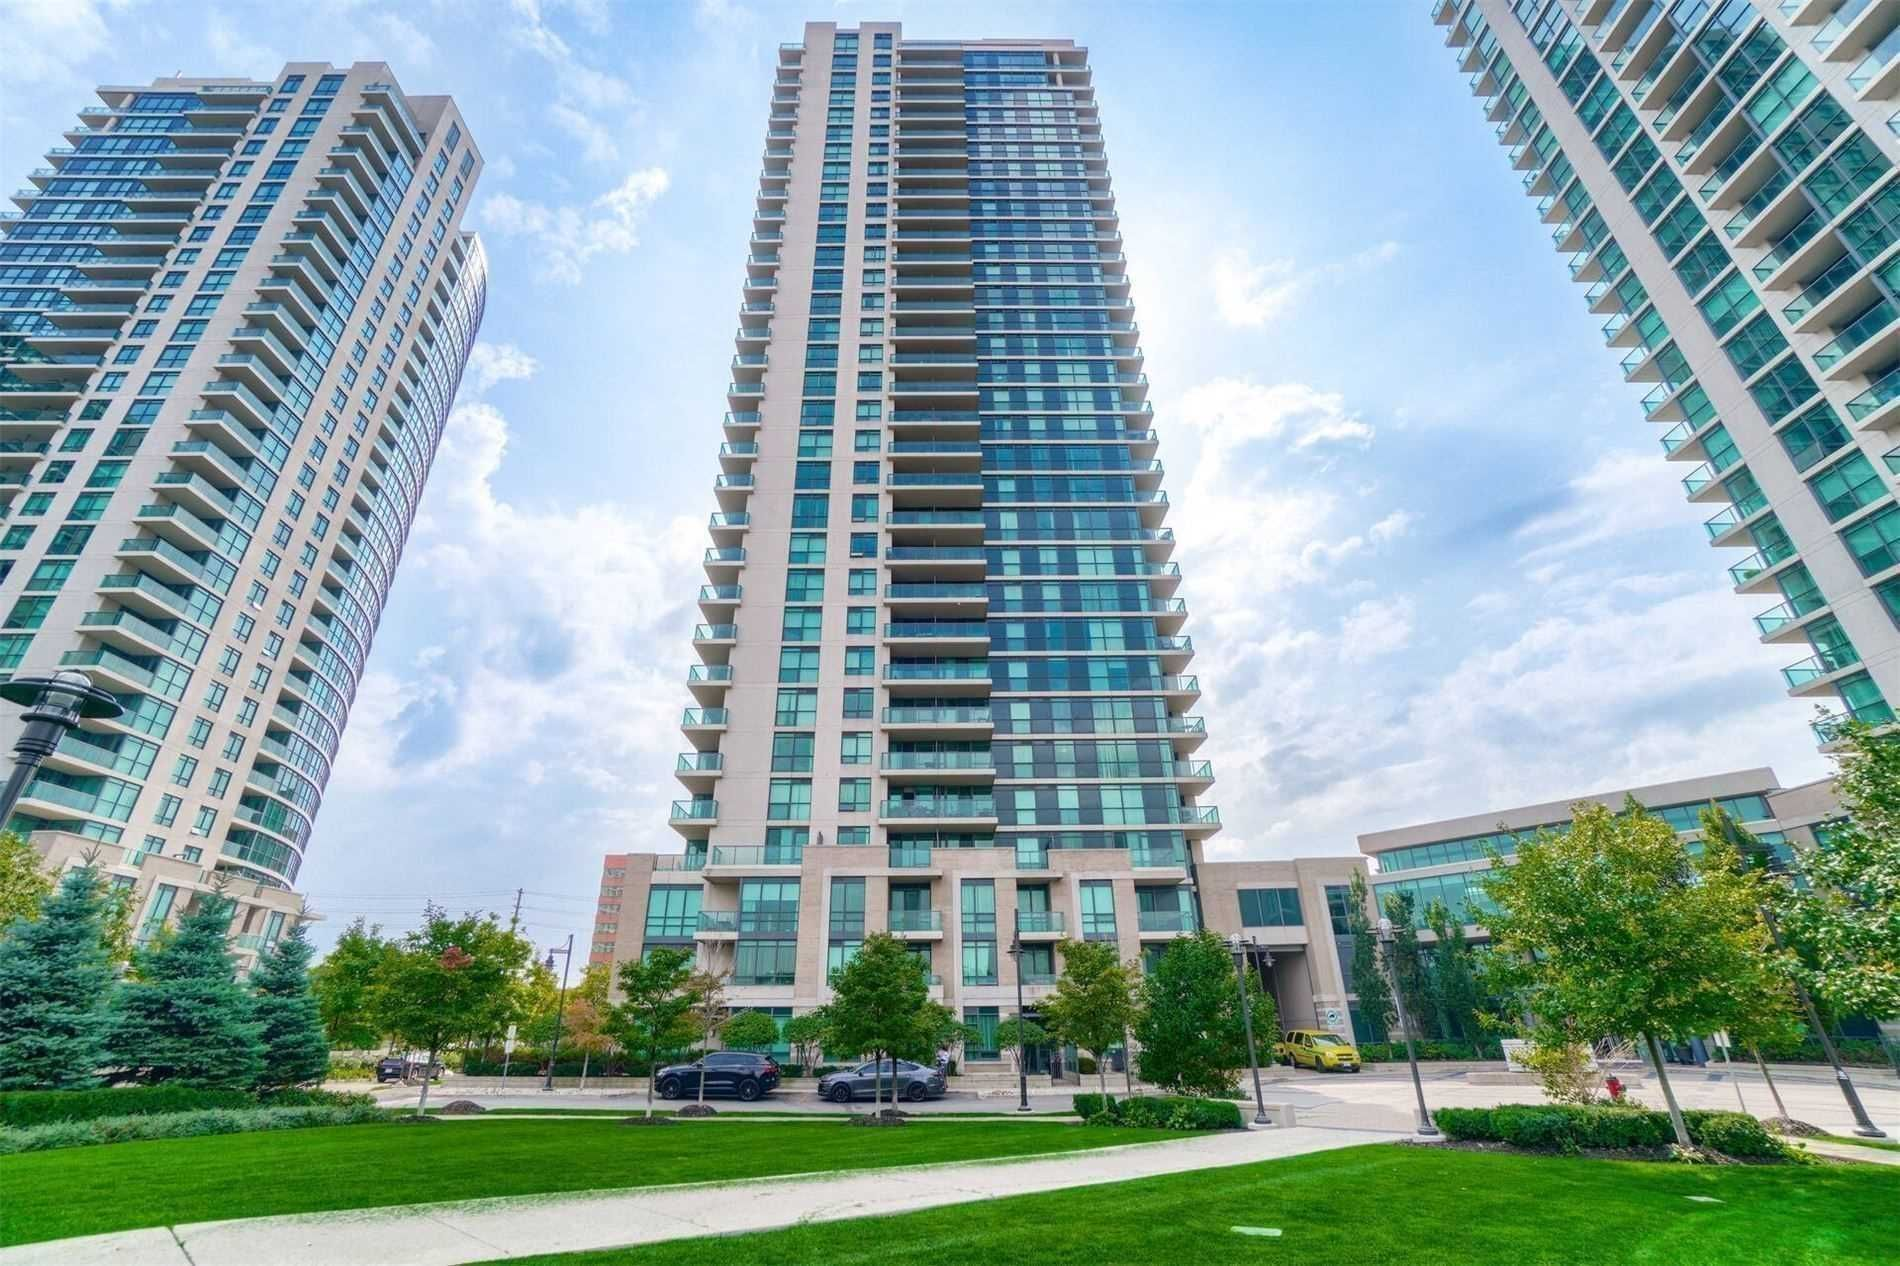 225 Sherway Gardens Rd, unit 505 for sale in Toronto - image #1